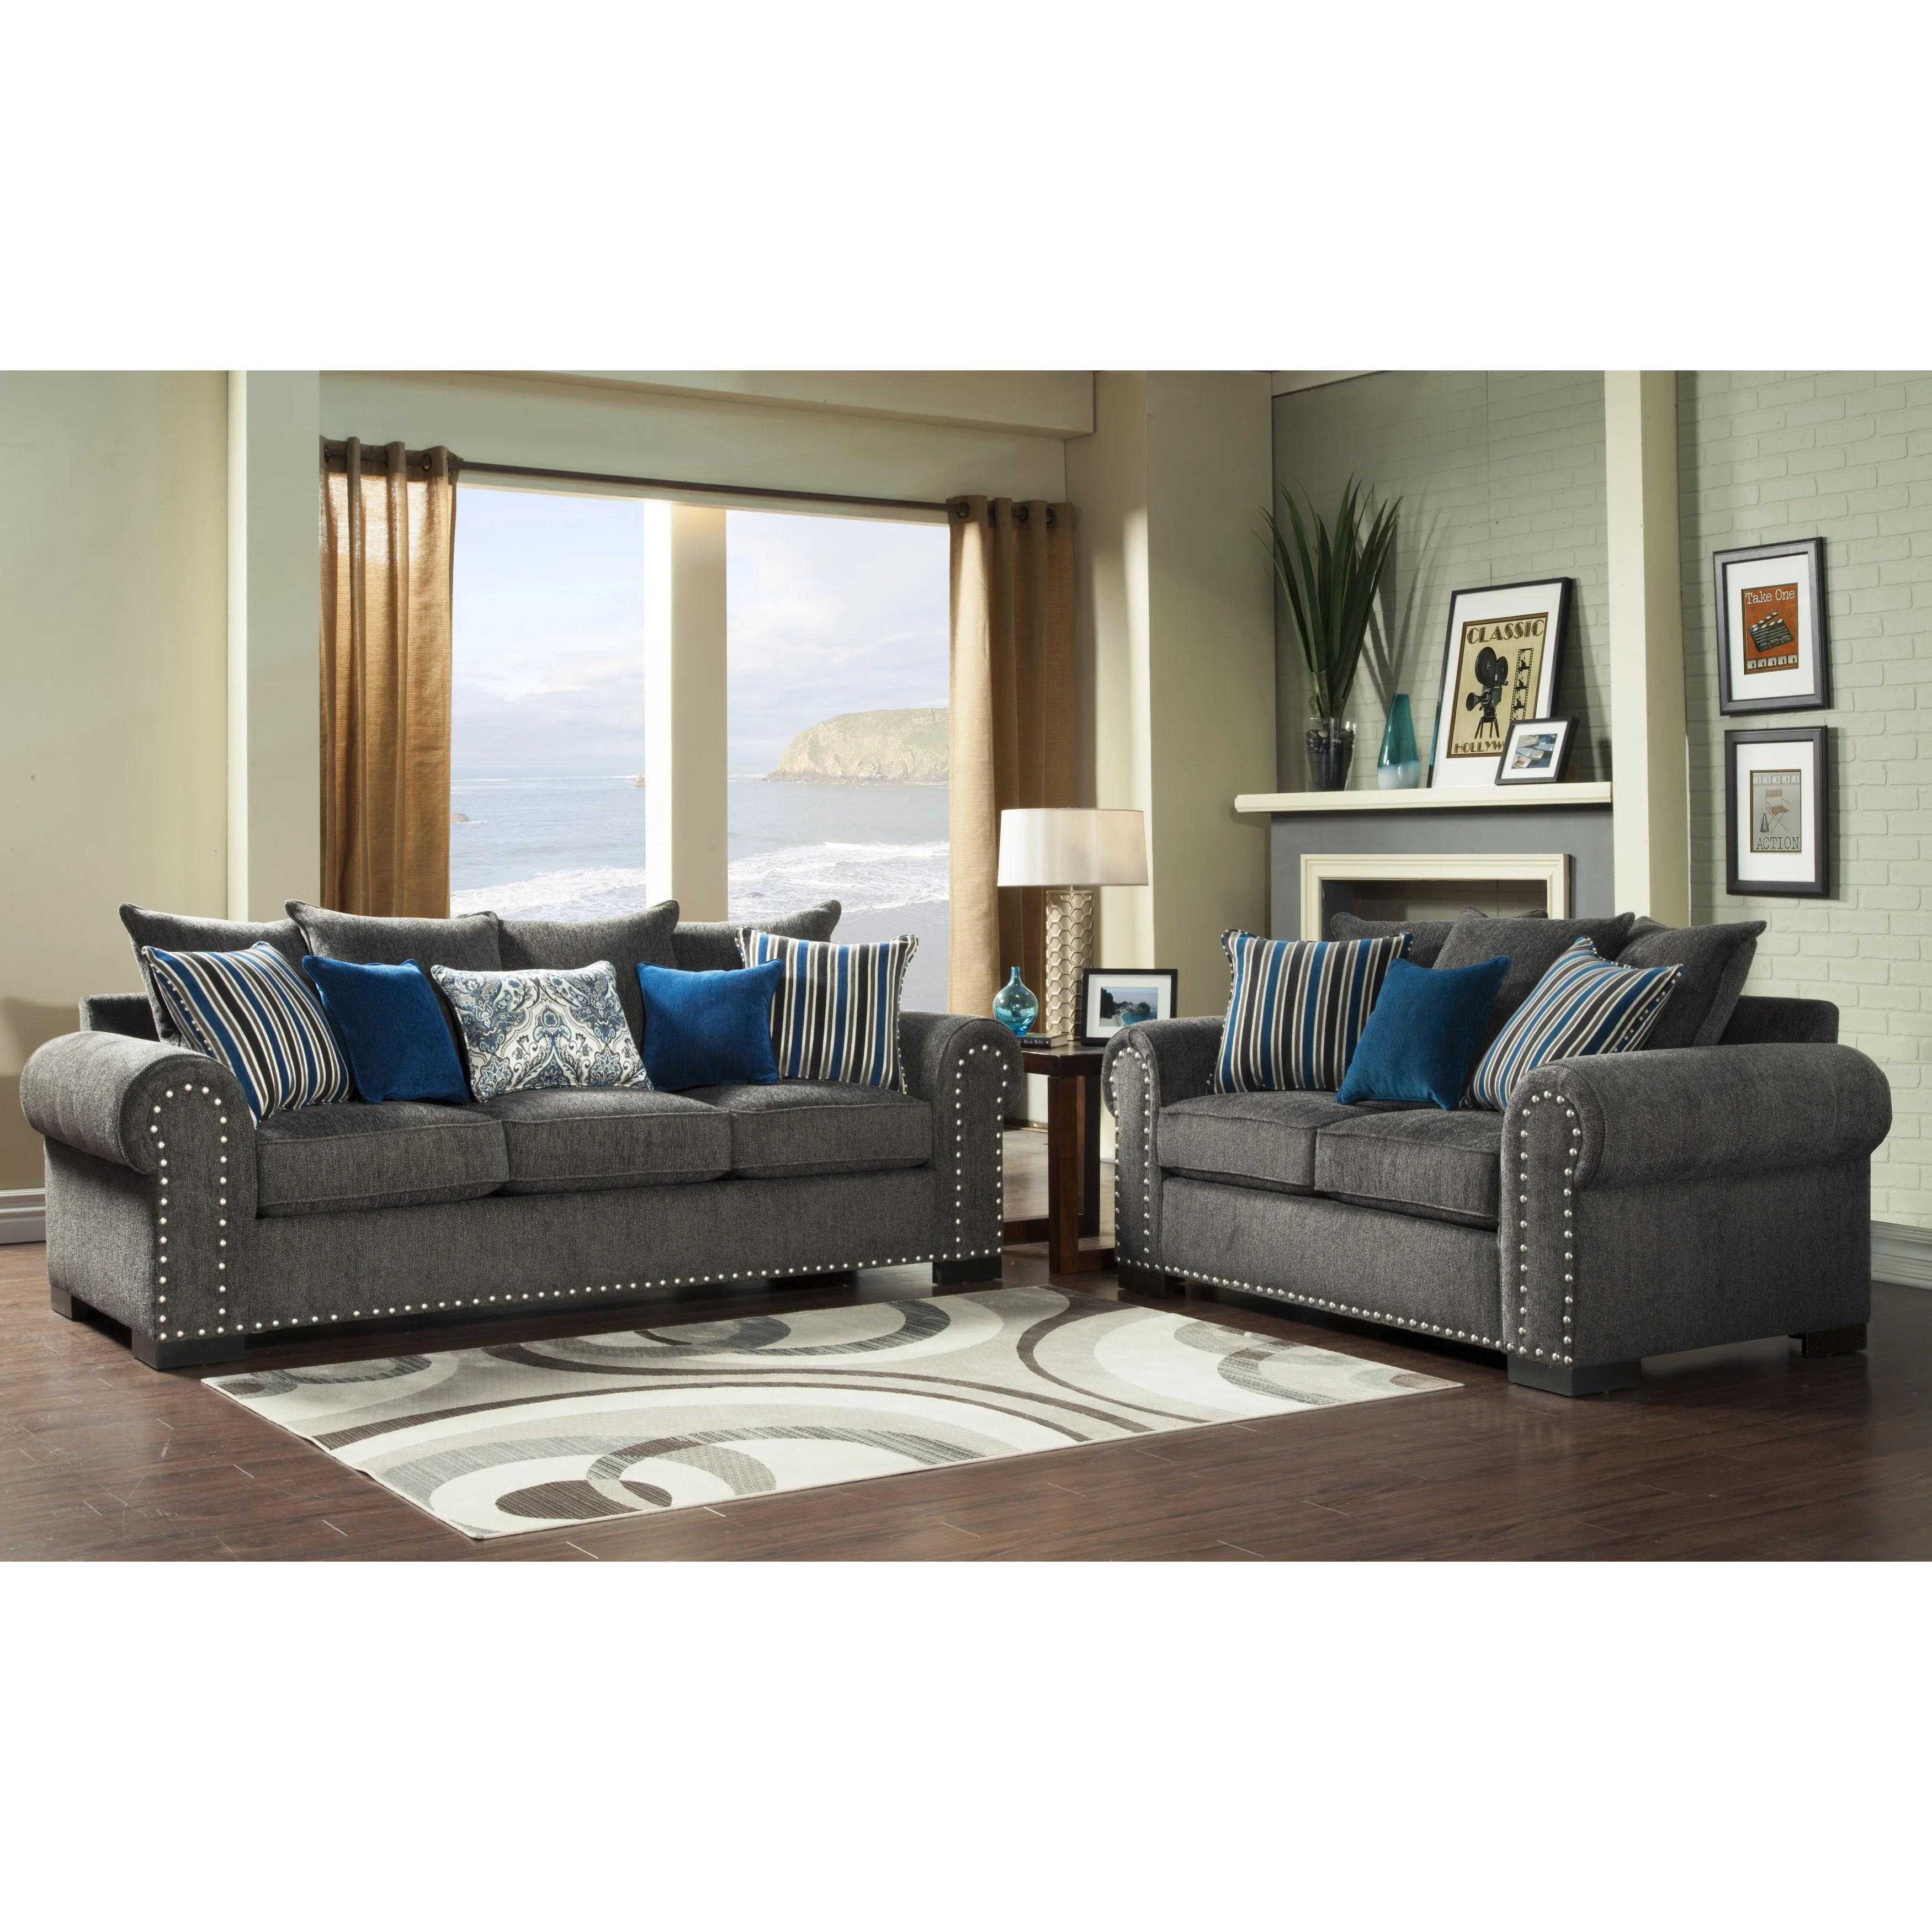 Sofa Set Action Furniture Of America Ivy Grey Blue Modern 2 Piece Sofa Love Set